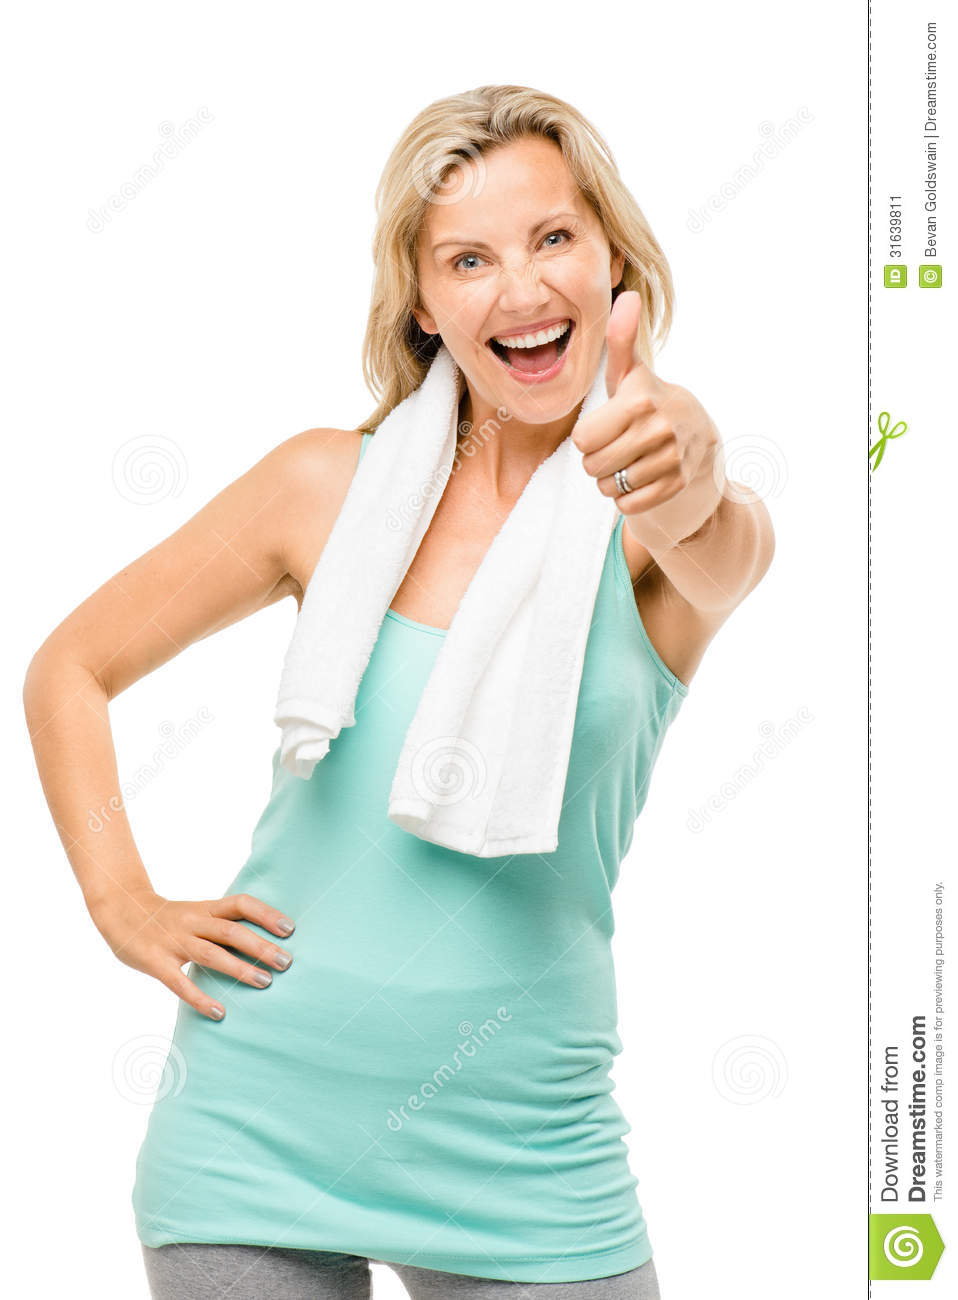 healthy mature woman exercise thumbs up isolated on white backgr